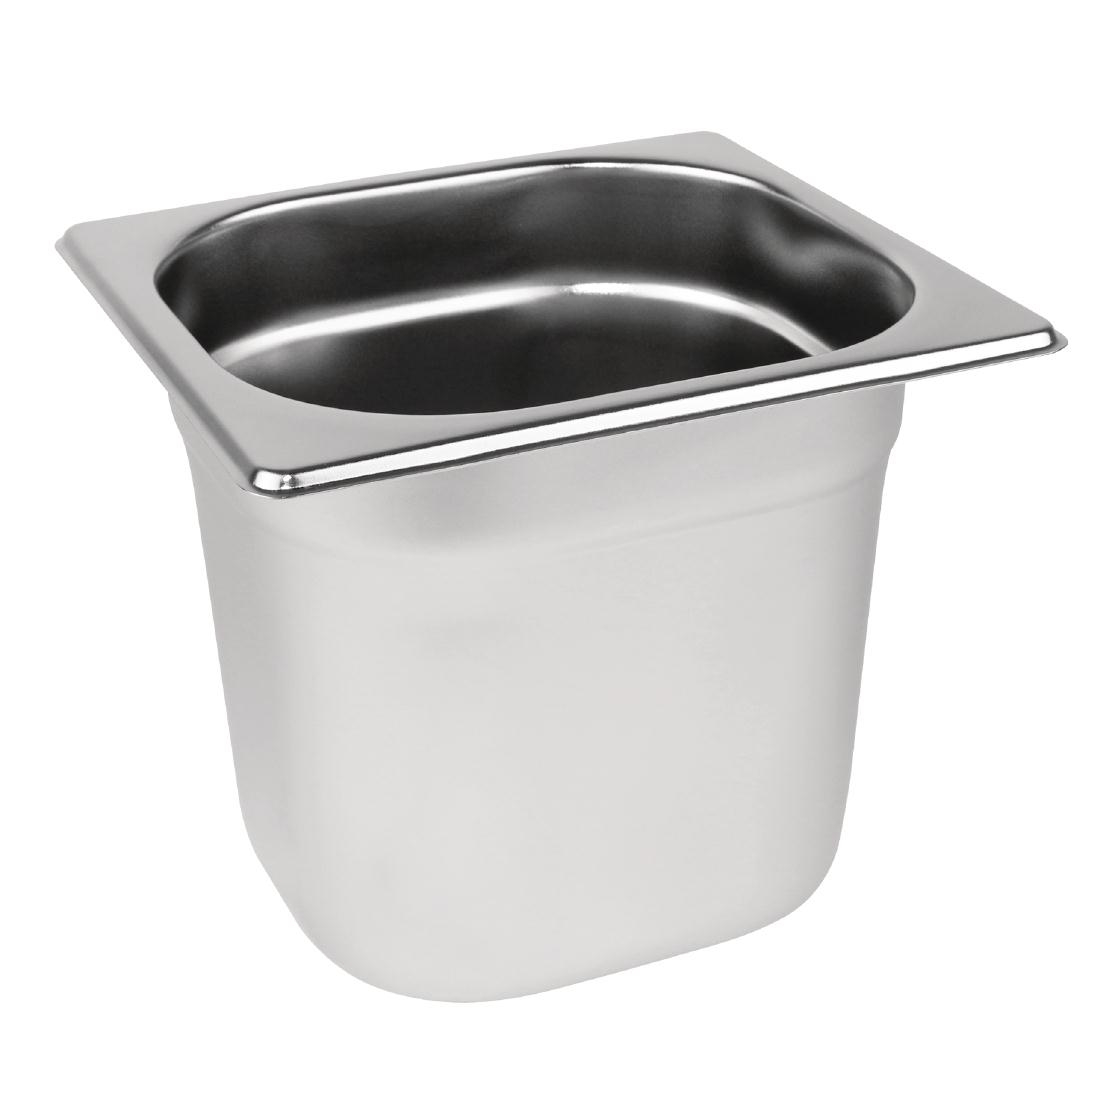 1/6 Stainless Steel Gn Pan Gastronorm Pans For Canteen